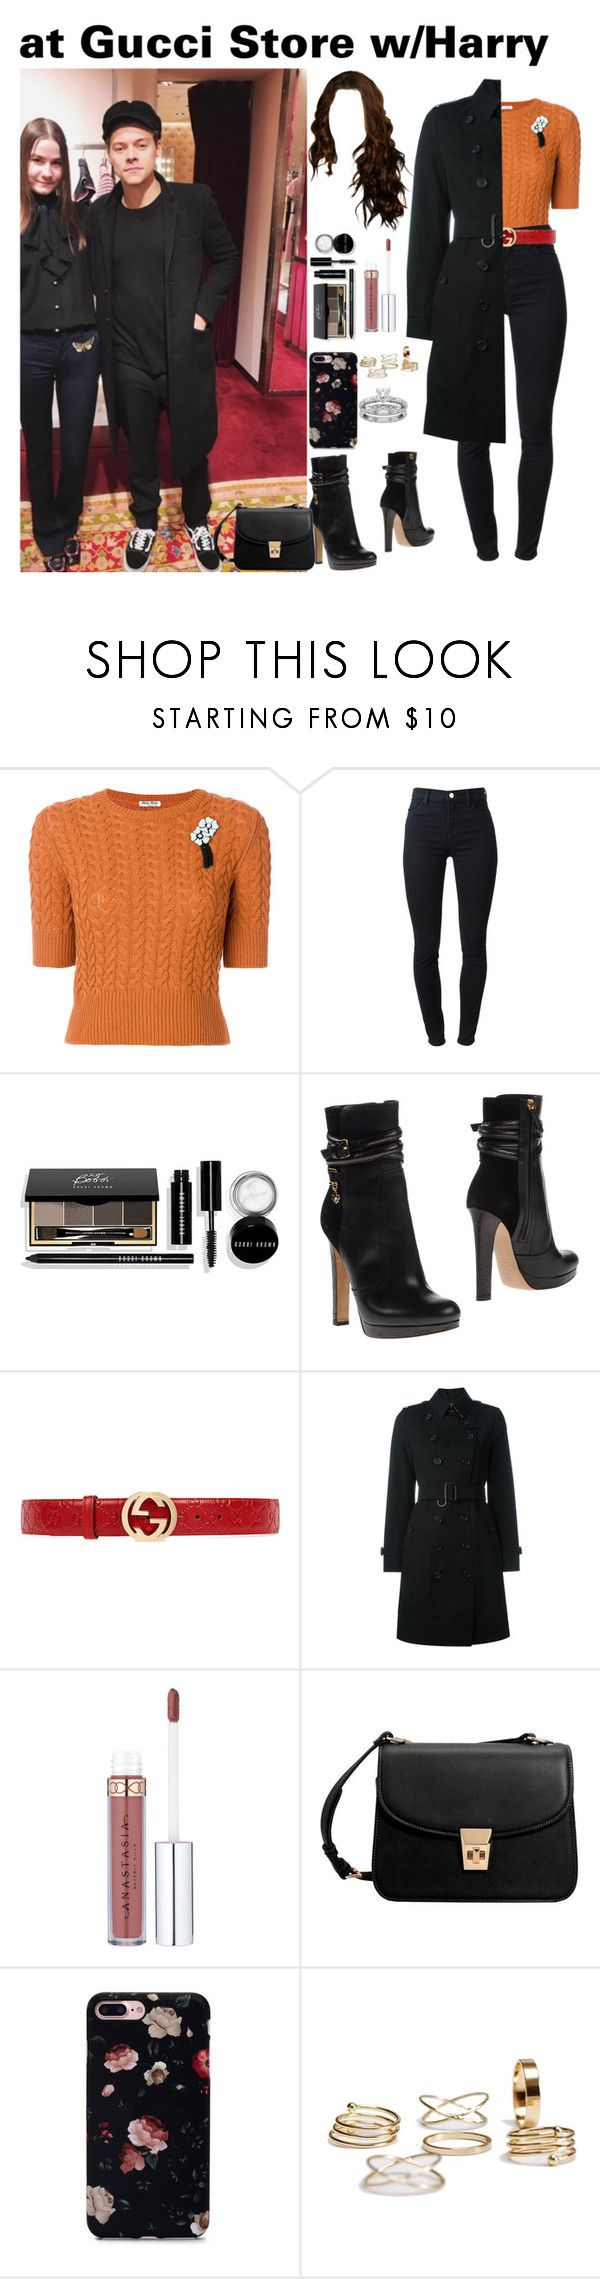 """""""at Gucci Store w/Harry"""" by tatabranquinha ❤ liked on Polyvore featuring Miu Miu, J Brand, Bobbi Brown Cosmetics, Dsquared2, Gucci, Burberry, MANGO, OneDirection and harrystyles"""